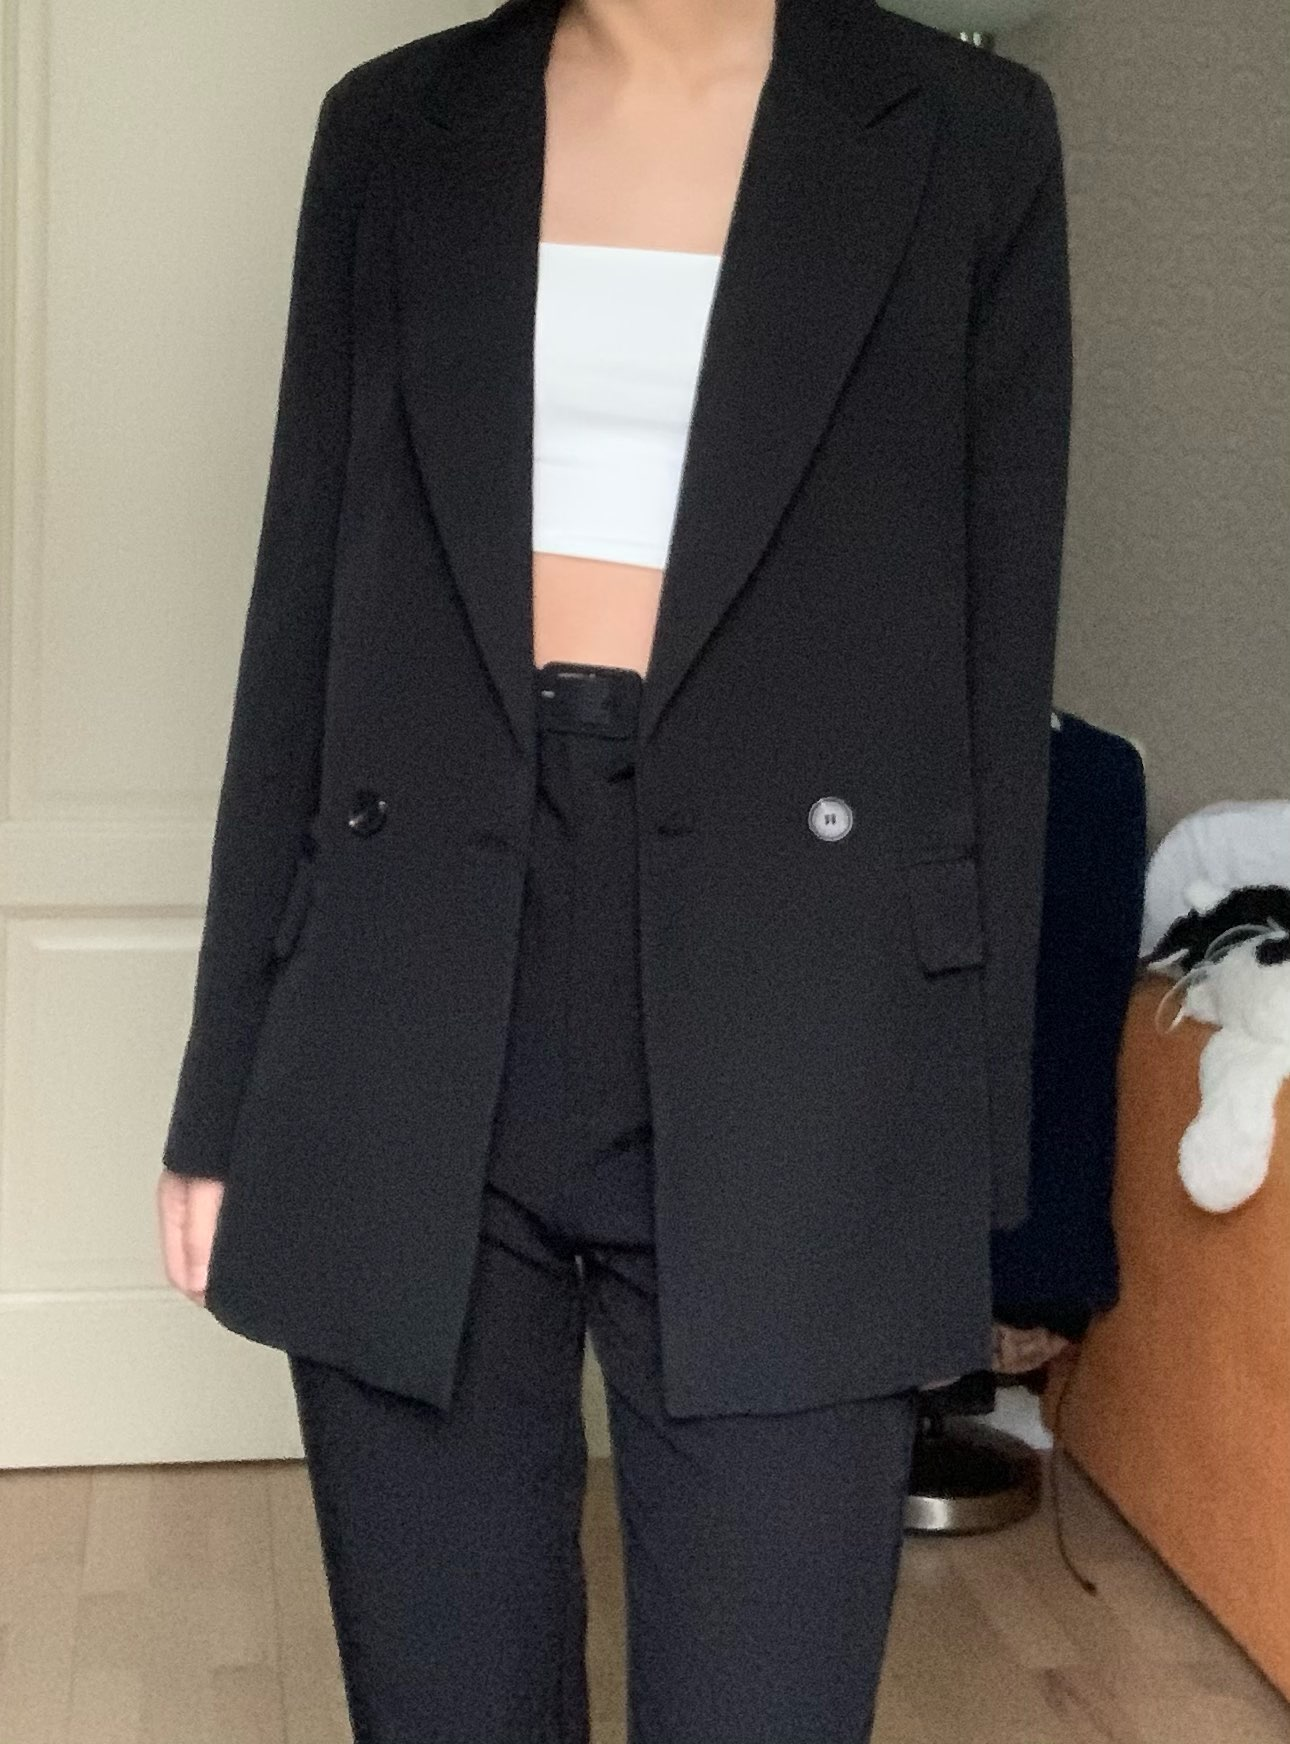 Autumn and winter women's blazer jacket casual solid color double-breasted pocket decorative coat reviews №1 274276